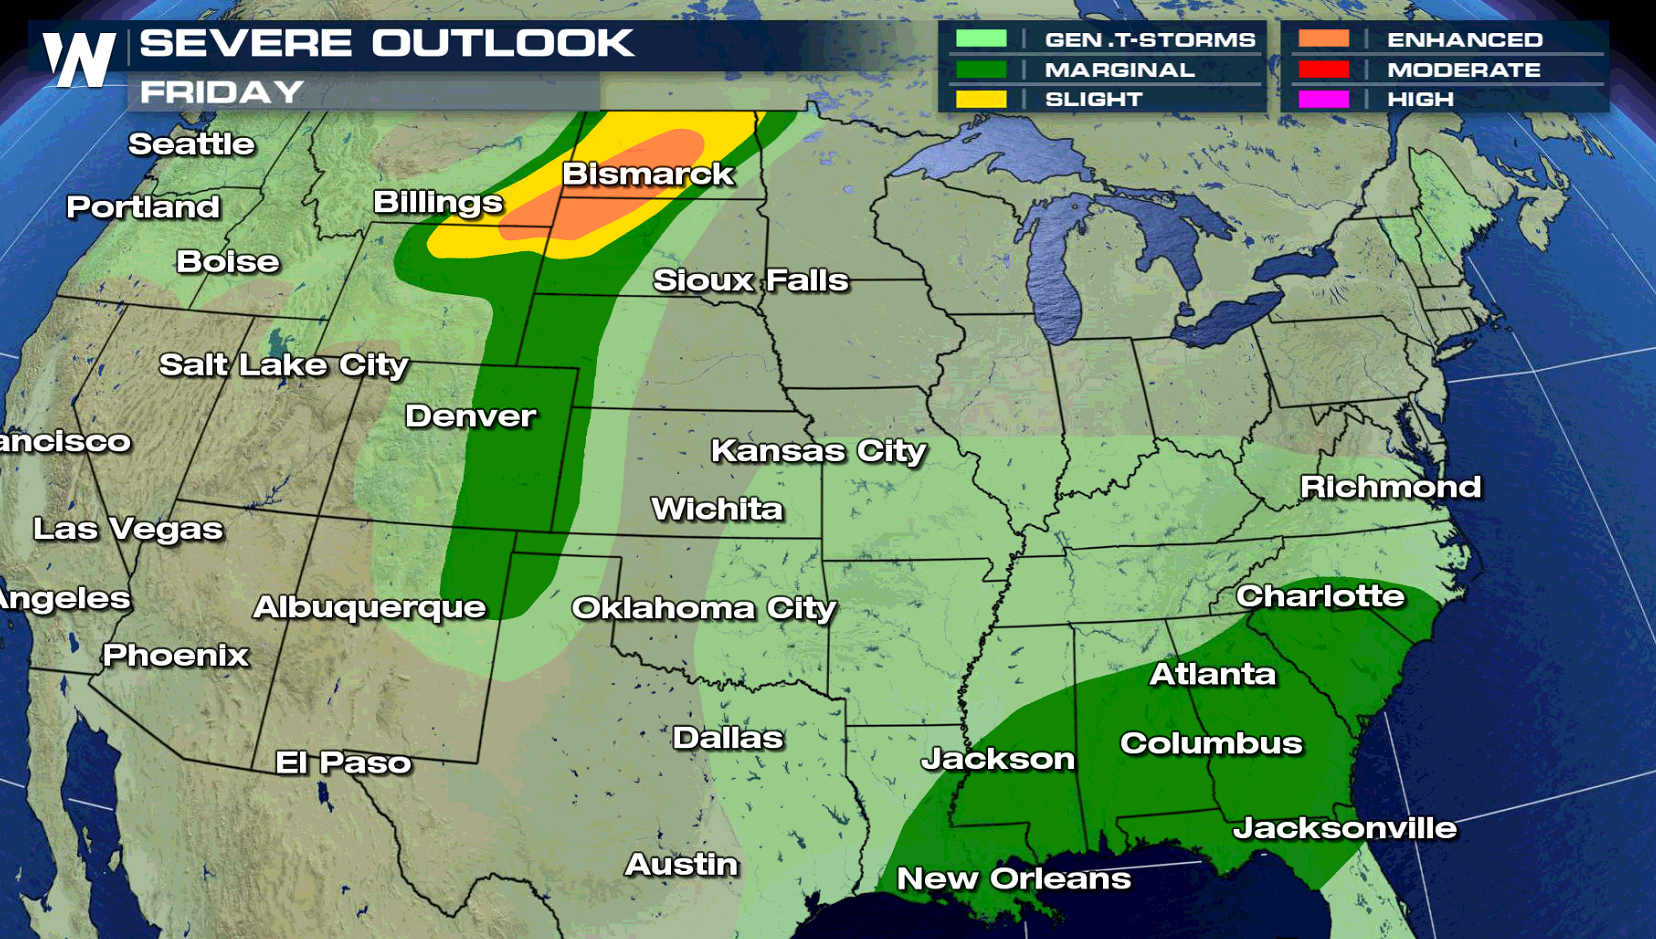 Severe Weather Targets High Plains and Southeast Friday